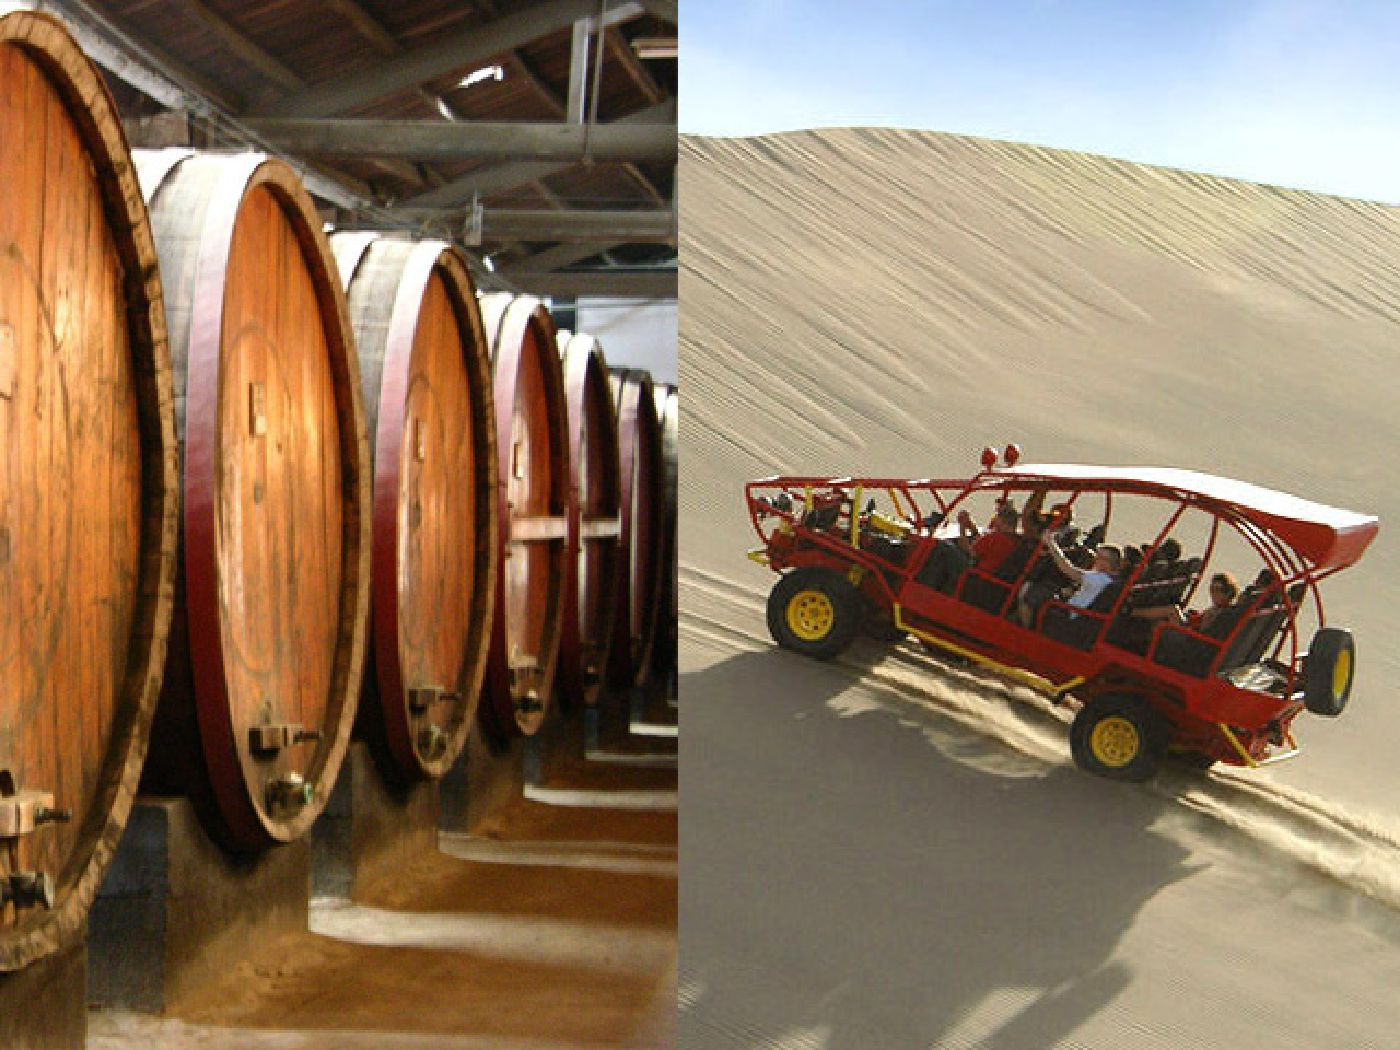 full day tubulares + tour de bodegas en Ica.